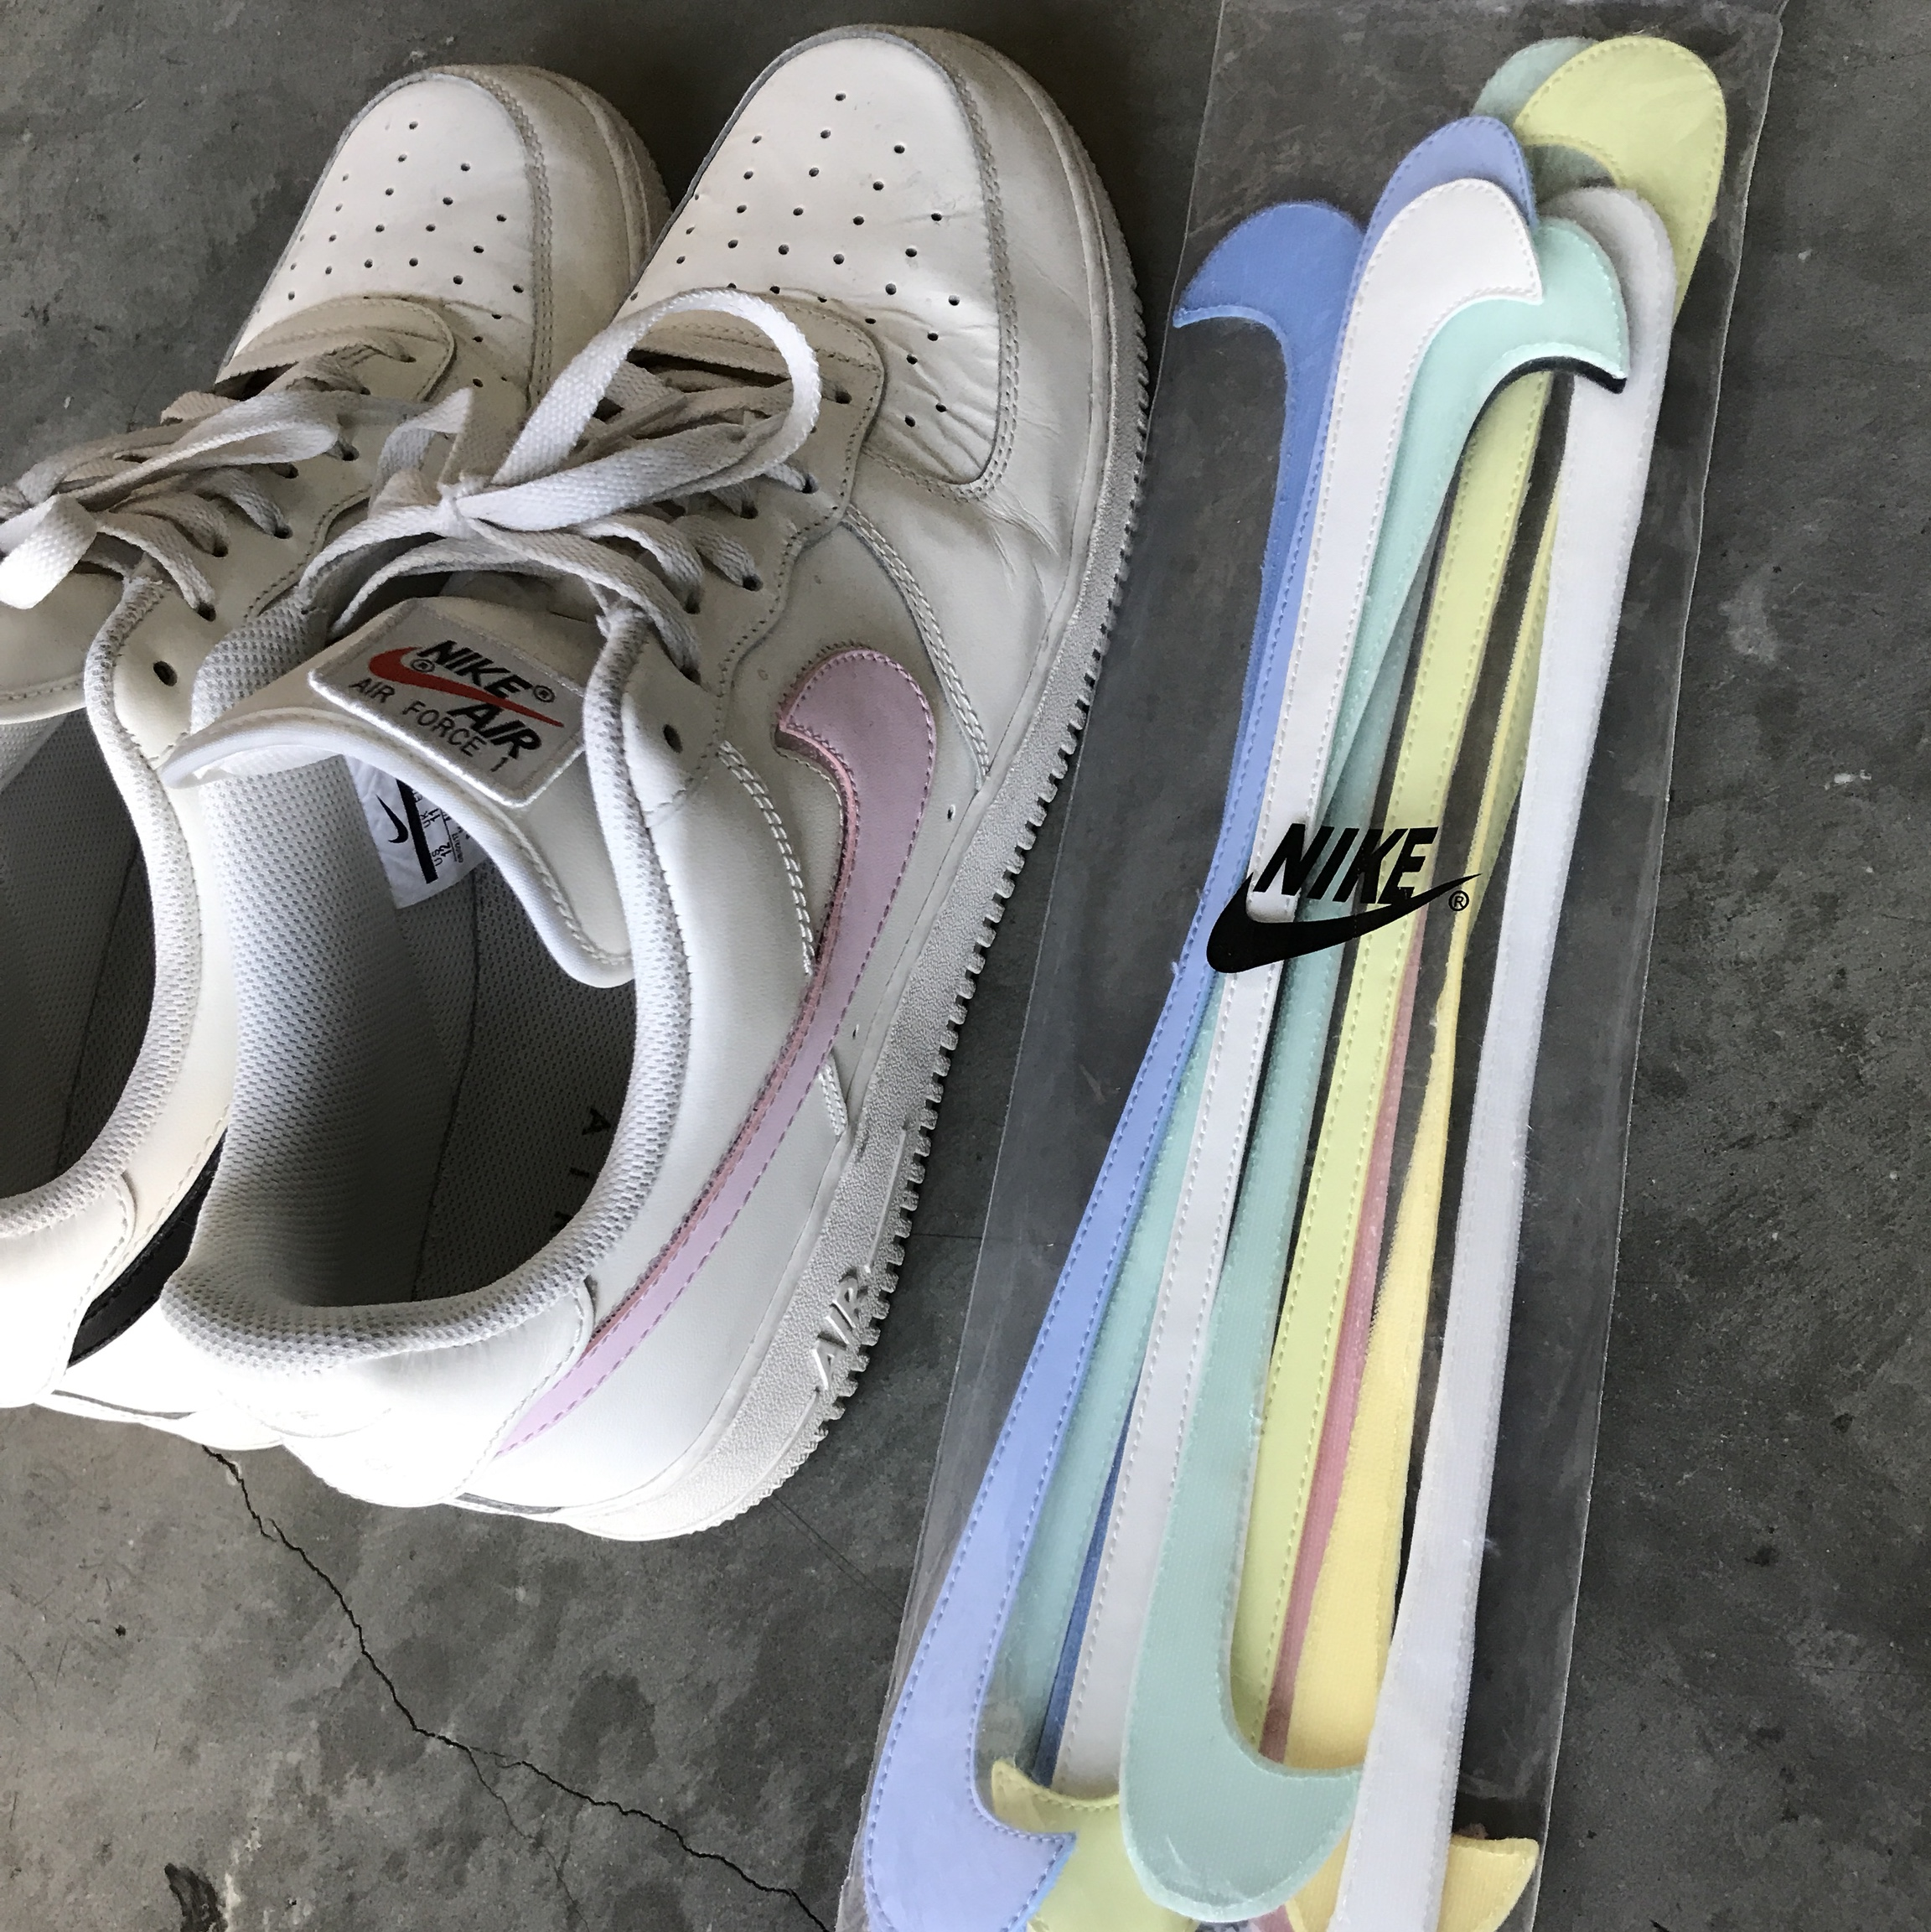 Nike Air Force one removable swoosh pack. Size 12. Depop